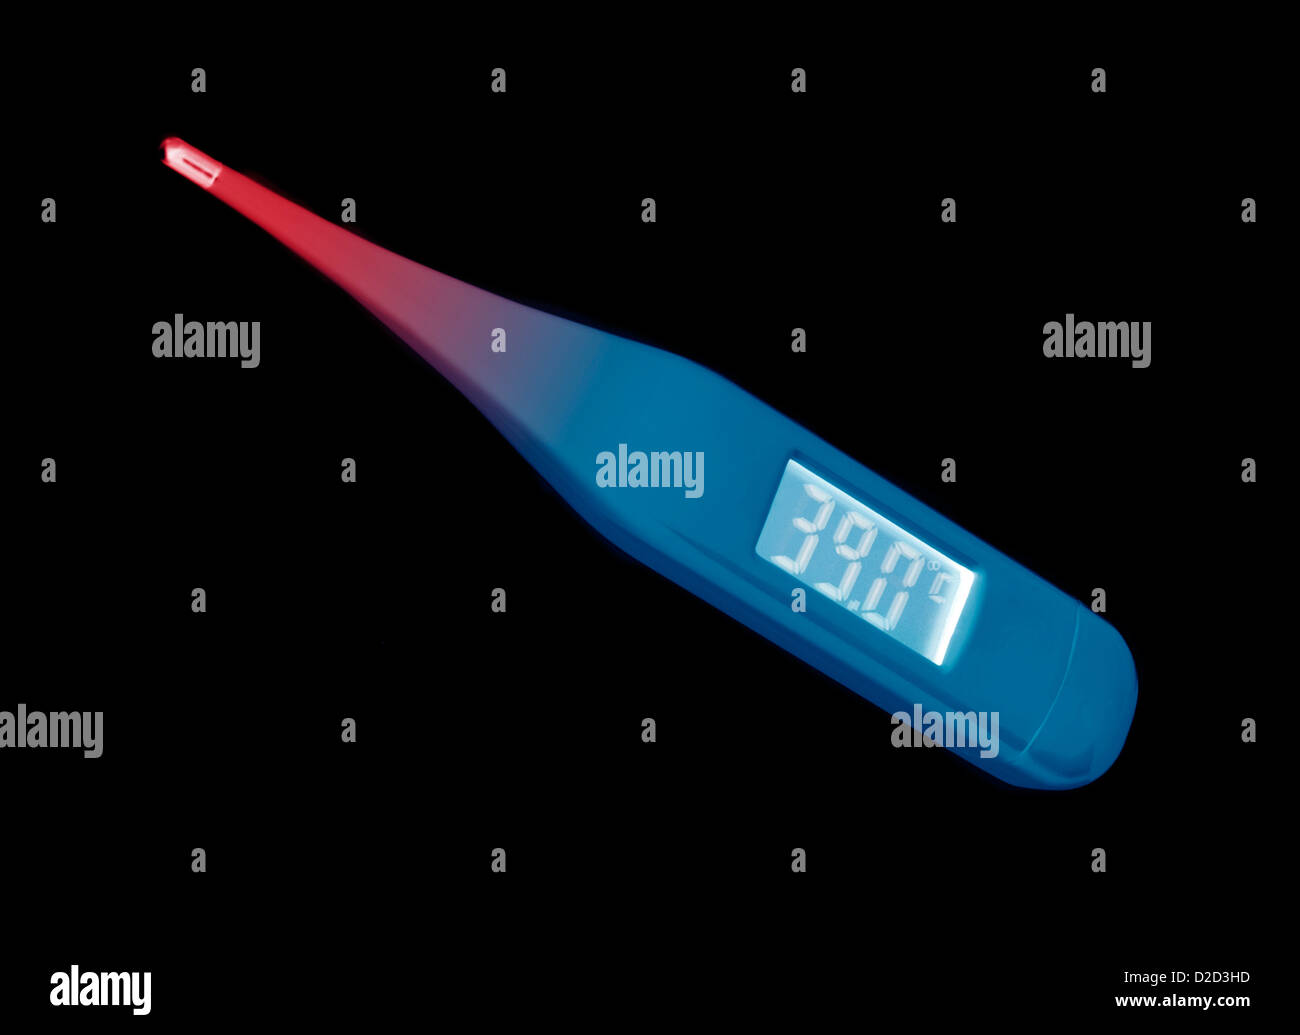 Medical thermometer - Stock Image